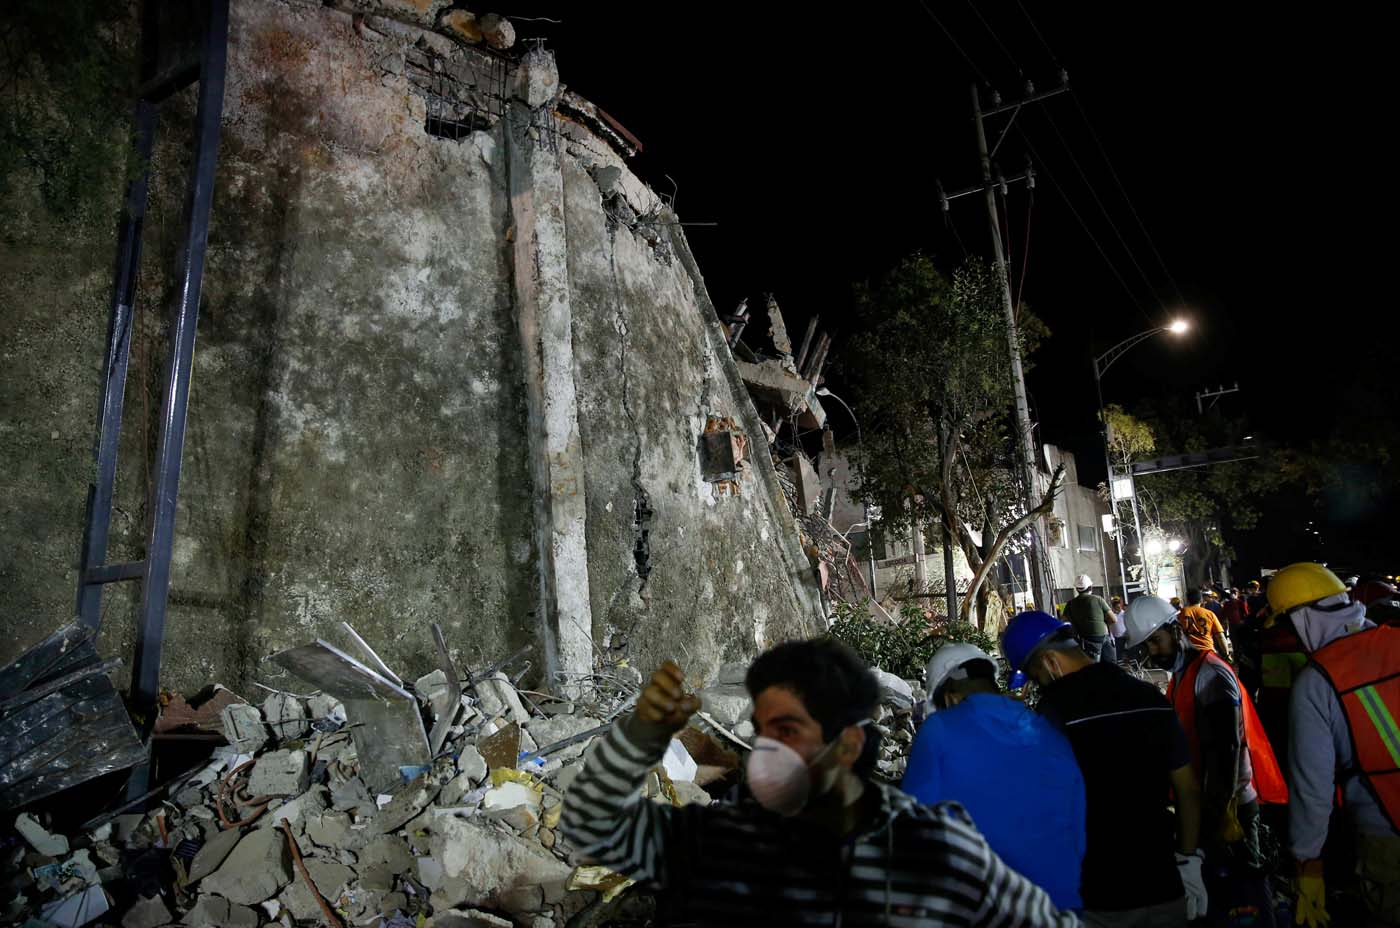 REFILE - REMOVING TYPO - Rescuers walk past a collapsed building after an earthquake in Mexico City, Mexico September 20, 2017. REUTERS/Henry Romero